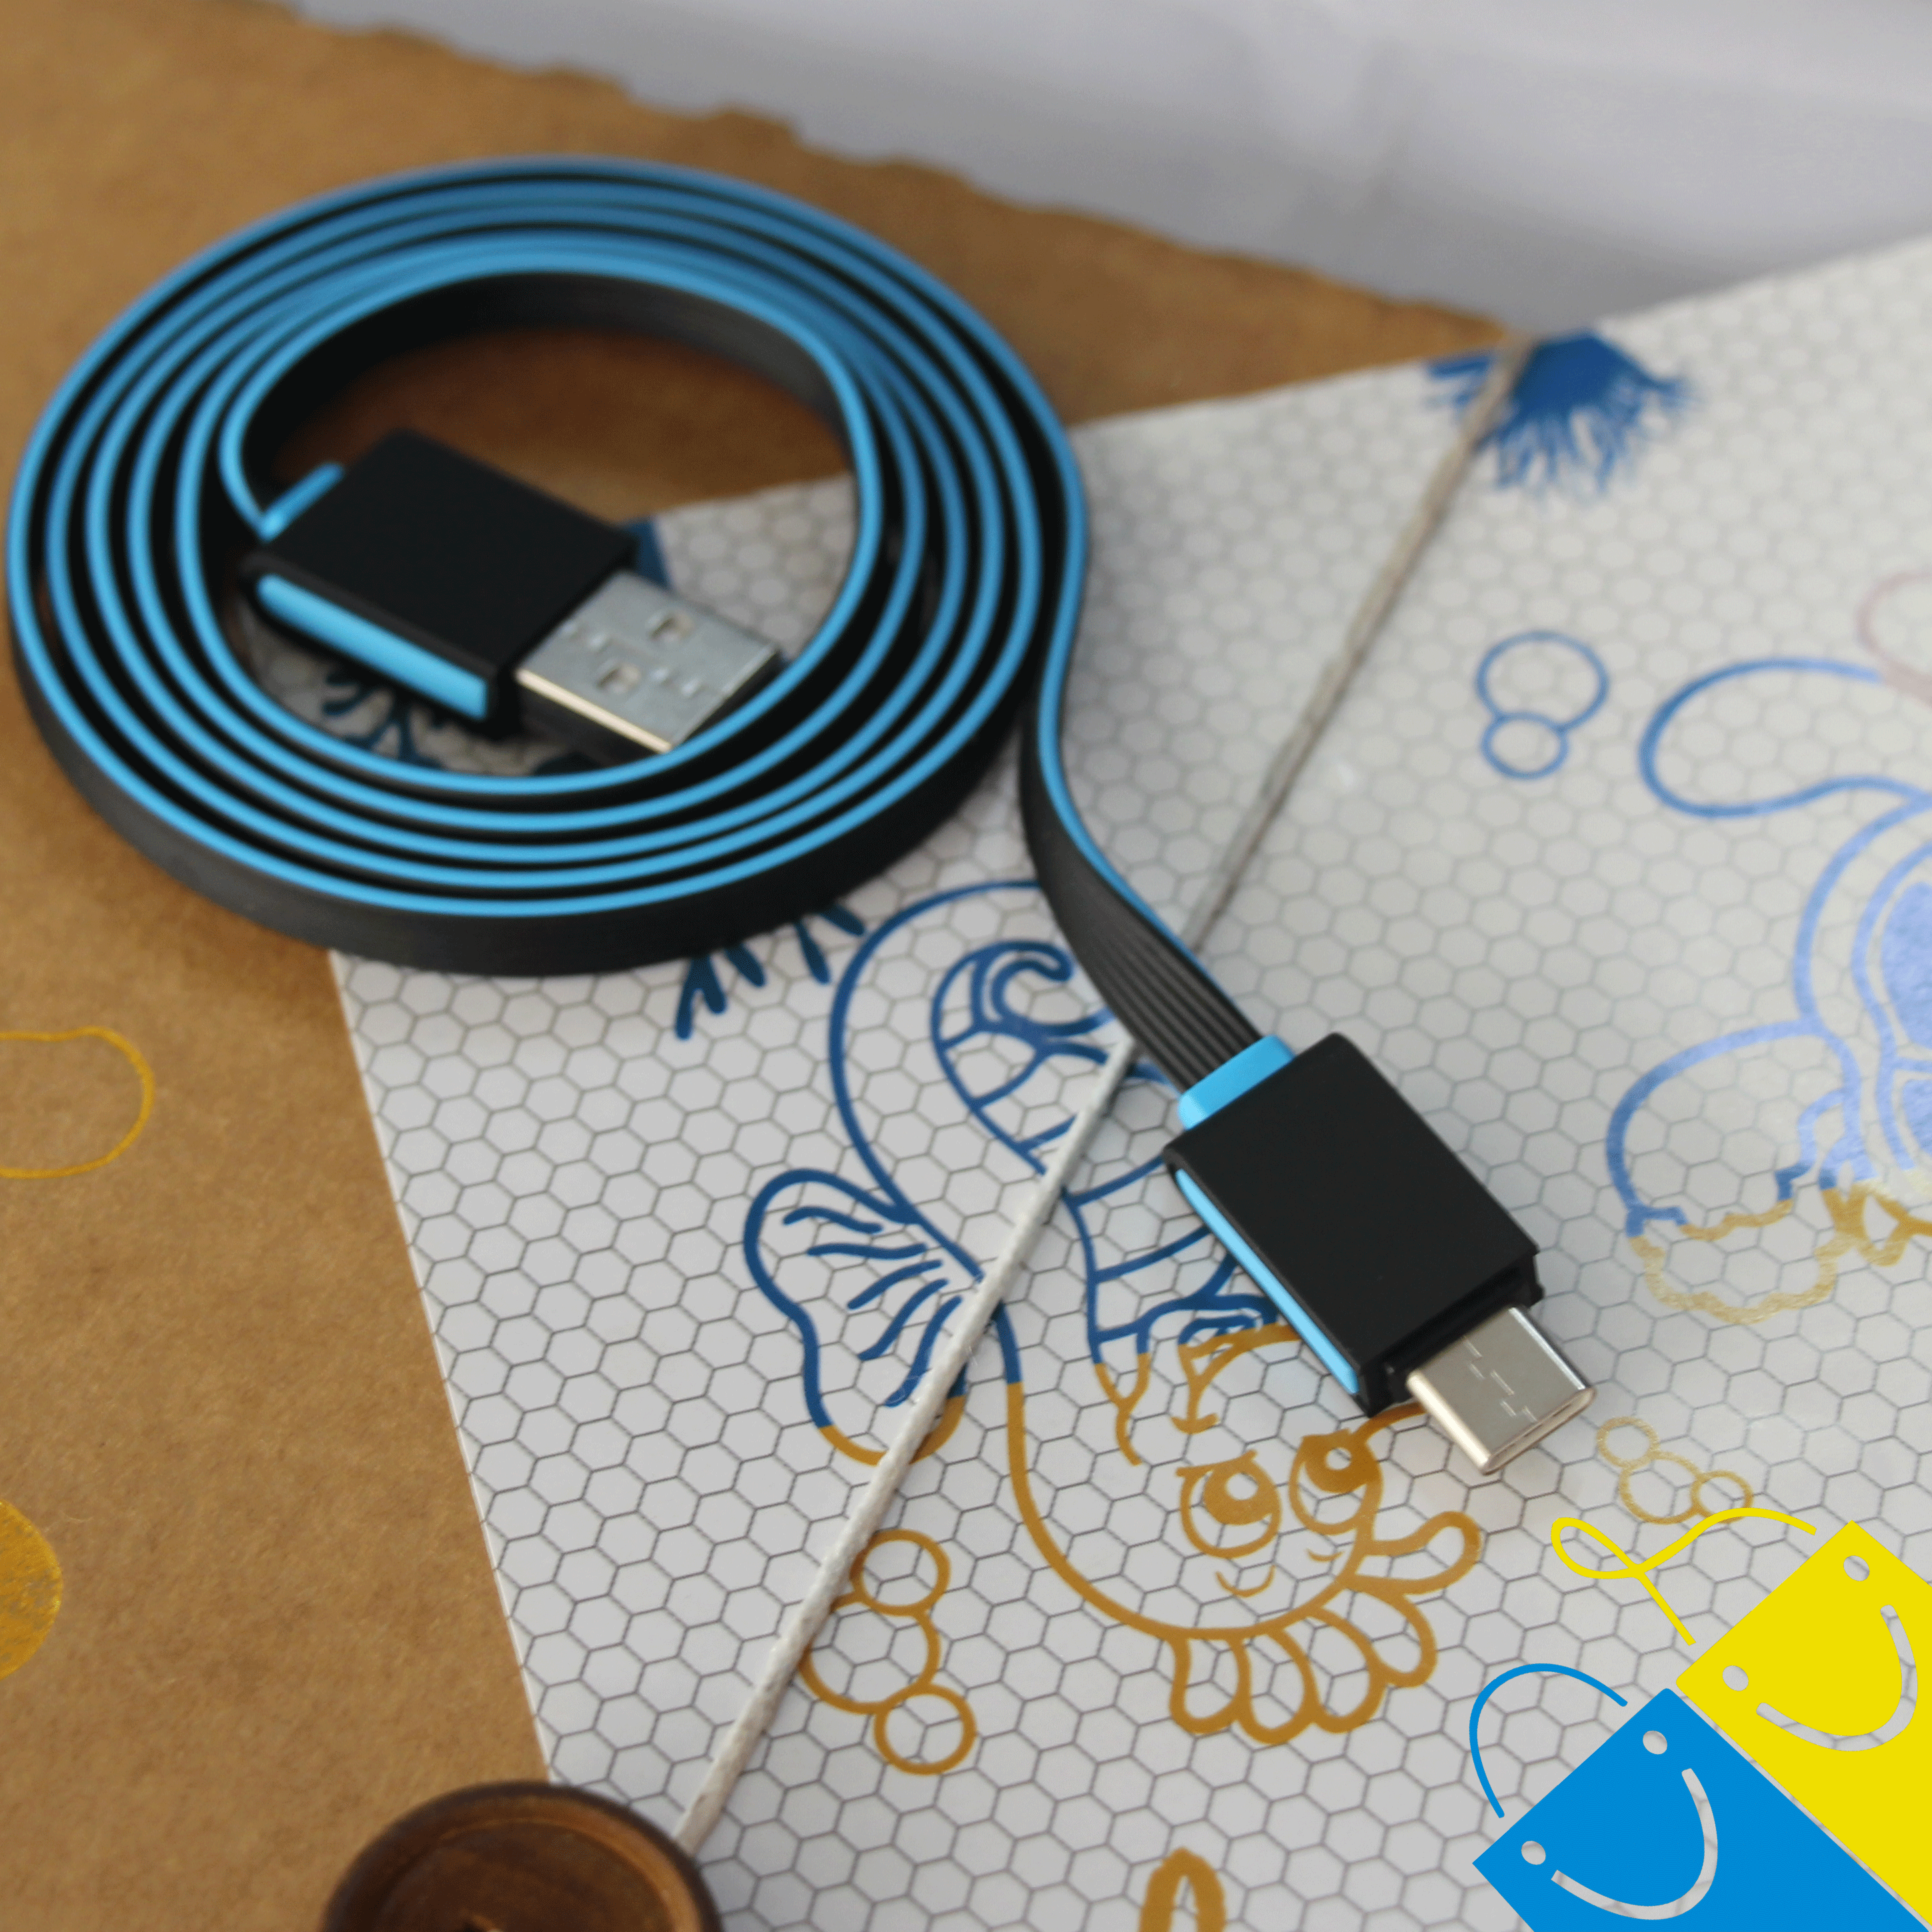 High speed USB type C cable